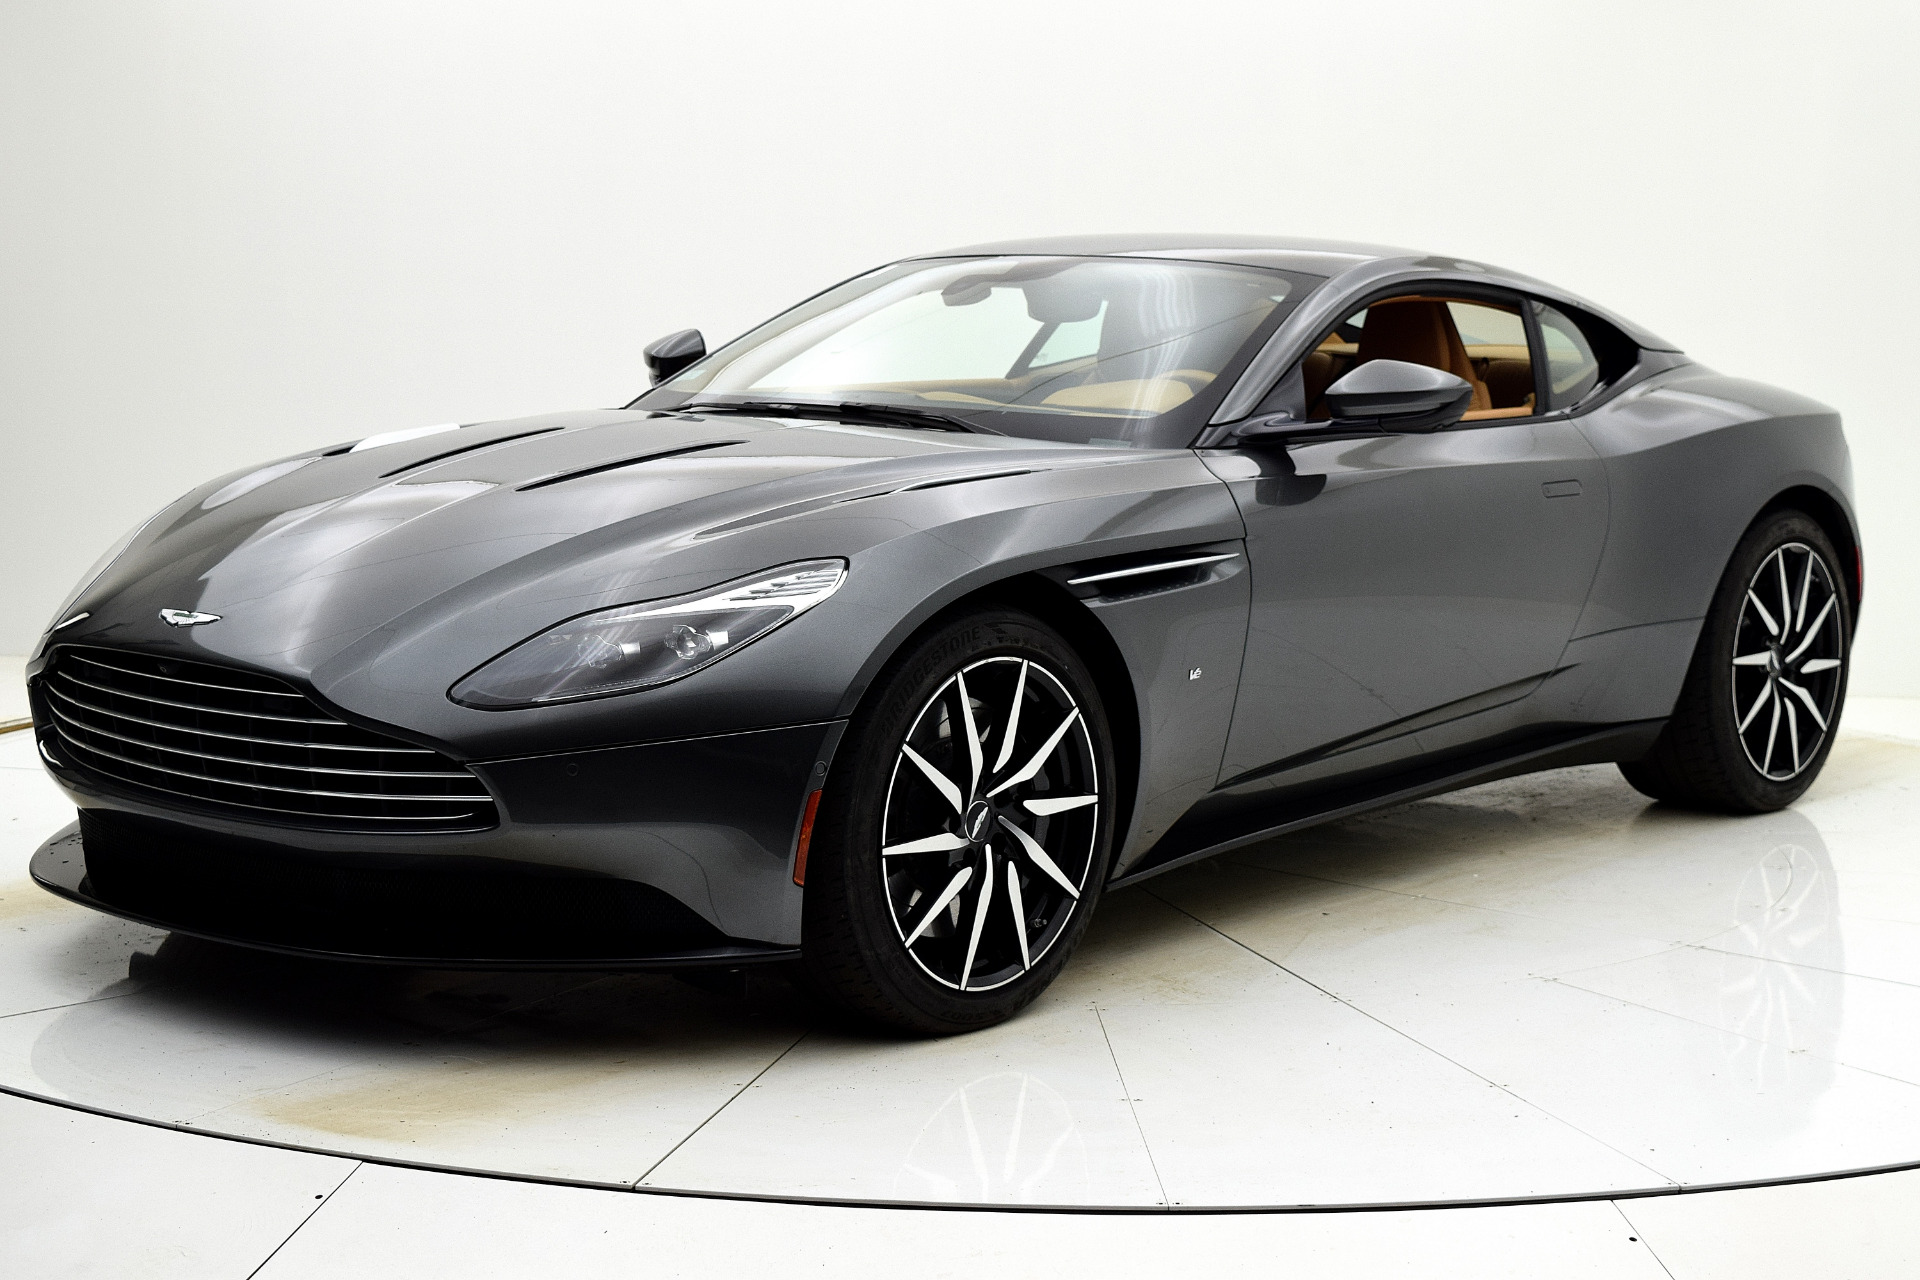 Used 2017 Aston Martin DB11 Coupe for sale $147,880 at F.C. Kerbeck Aston Martin in Palmyra NJ 08065 2